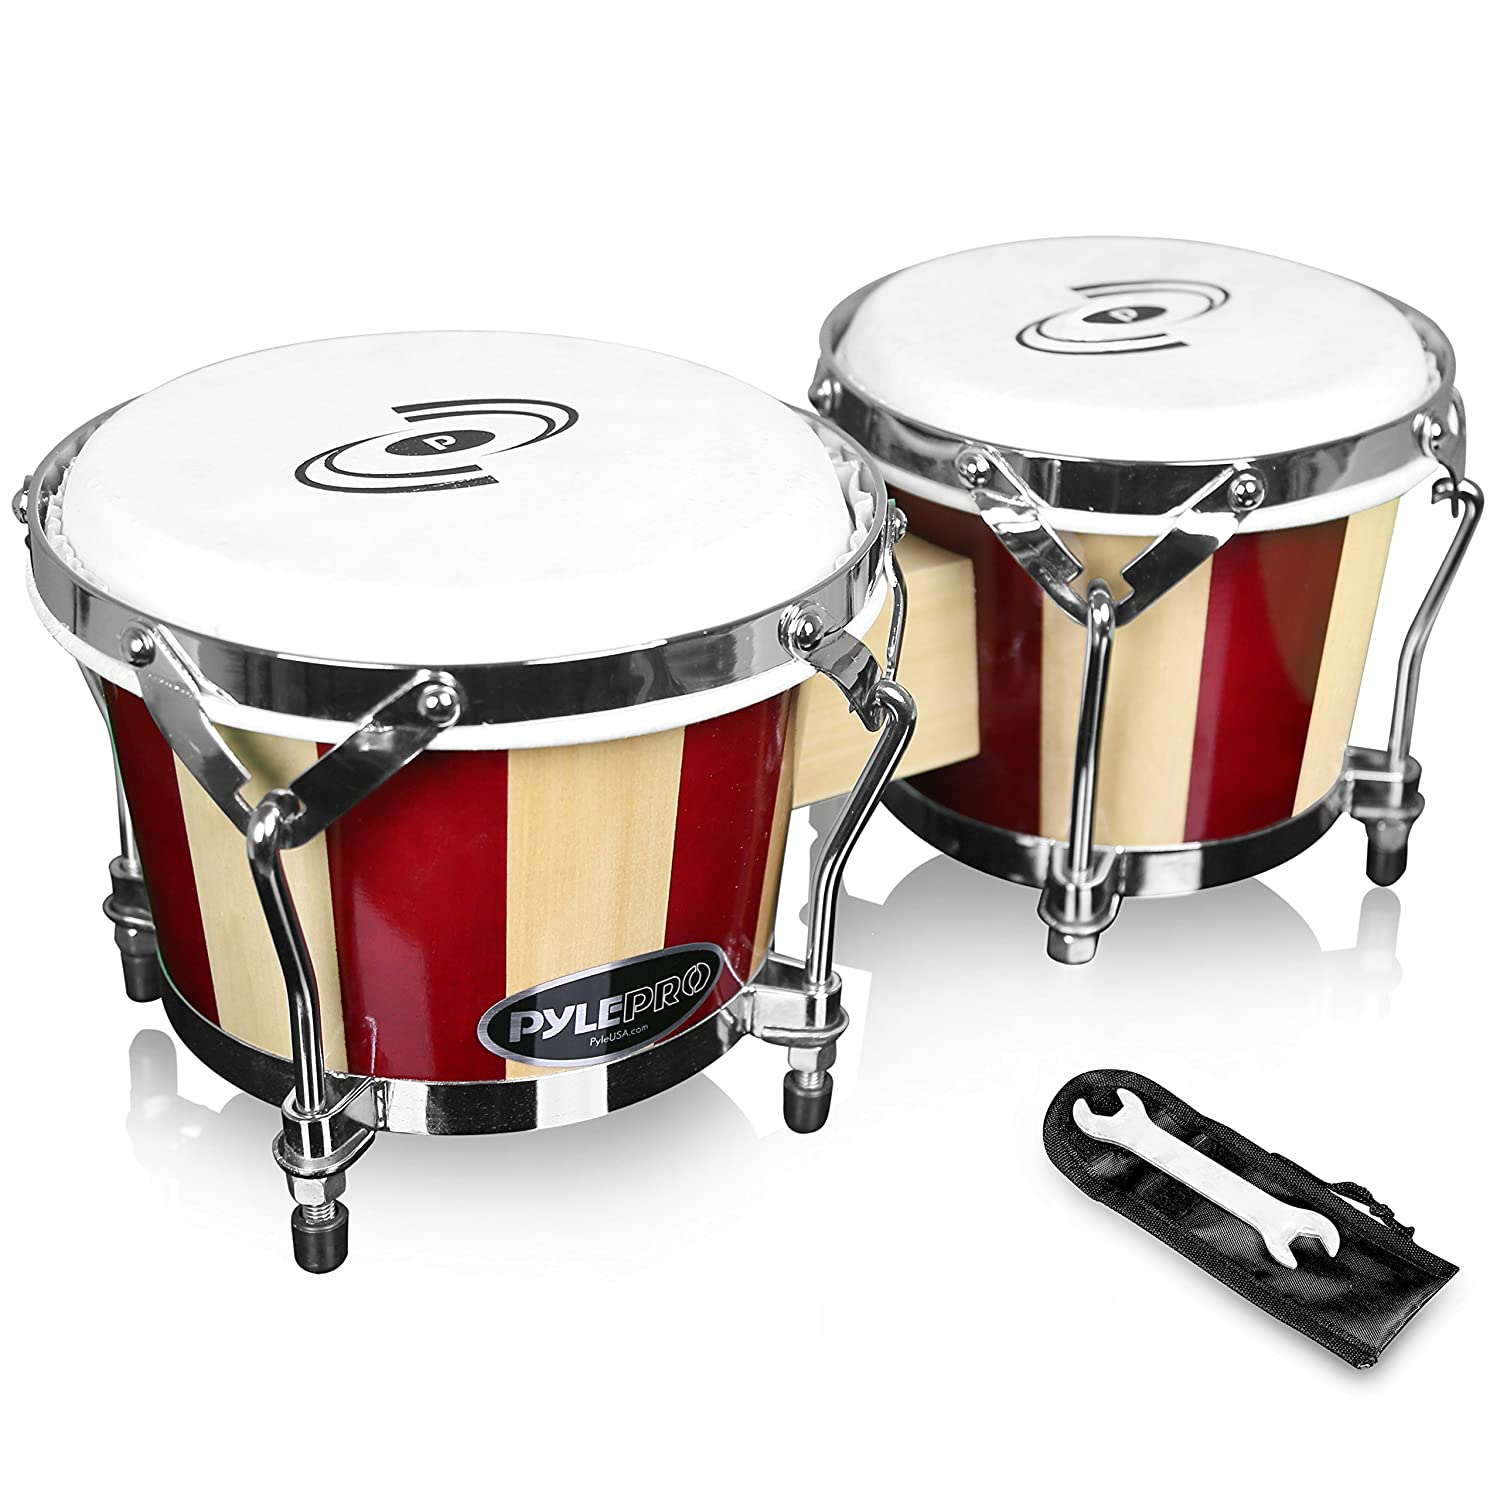 Pyle Hand Crafted Bongo Drums - Pair of Wooden Bongo Drums, 6.5 & 7.5 Inch - PBND10 Sound Around